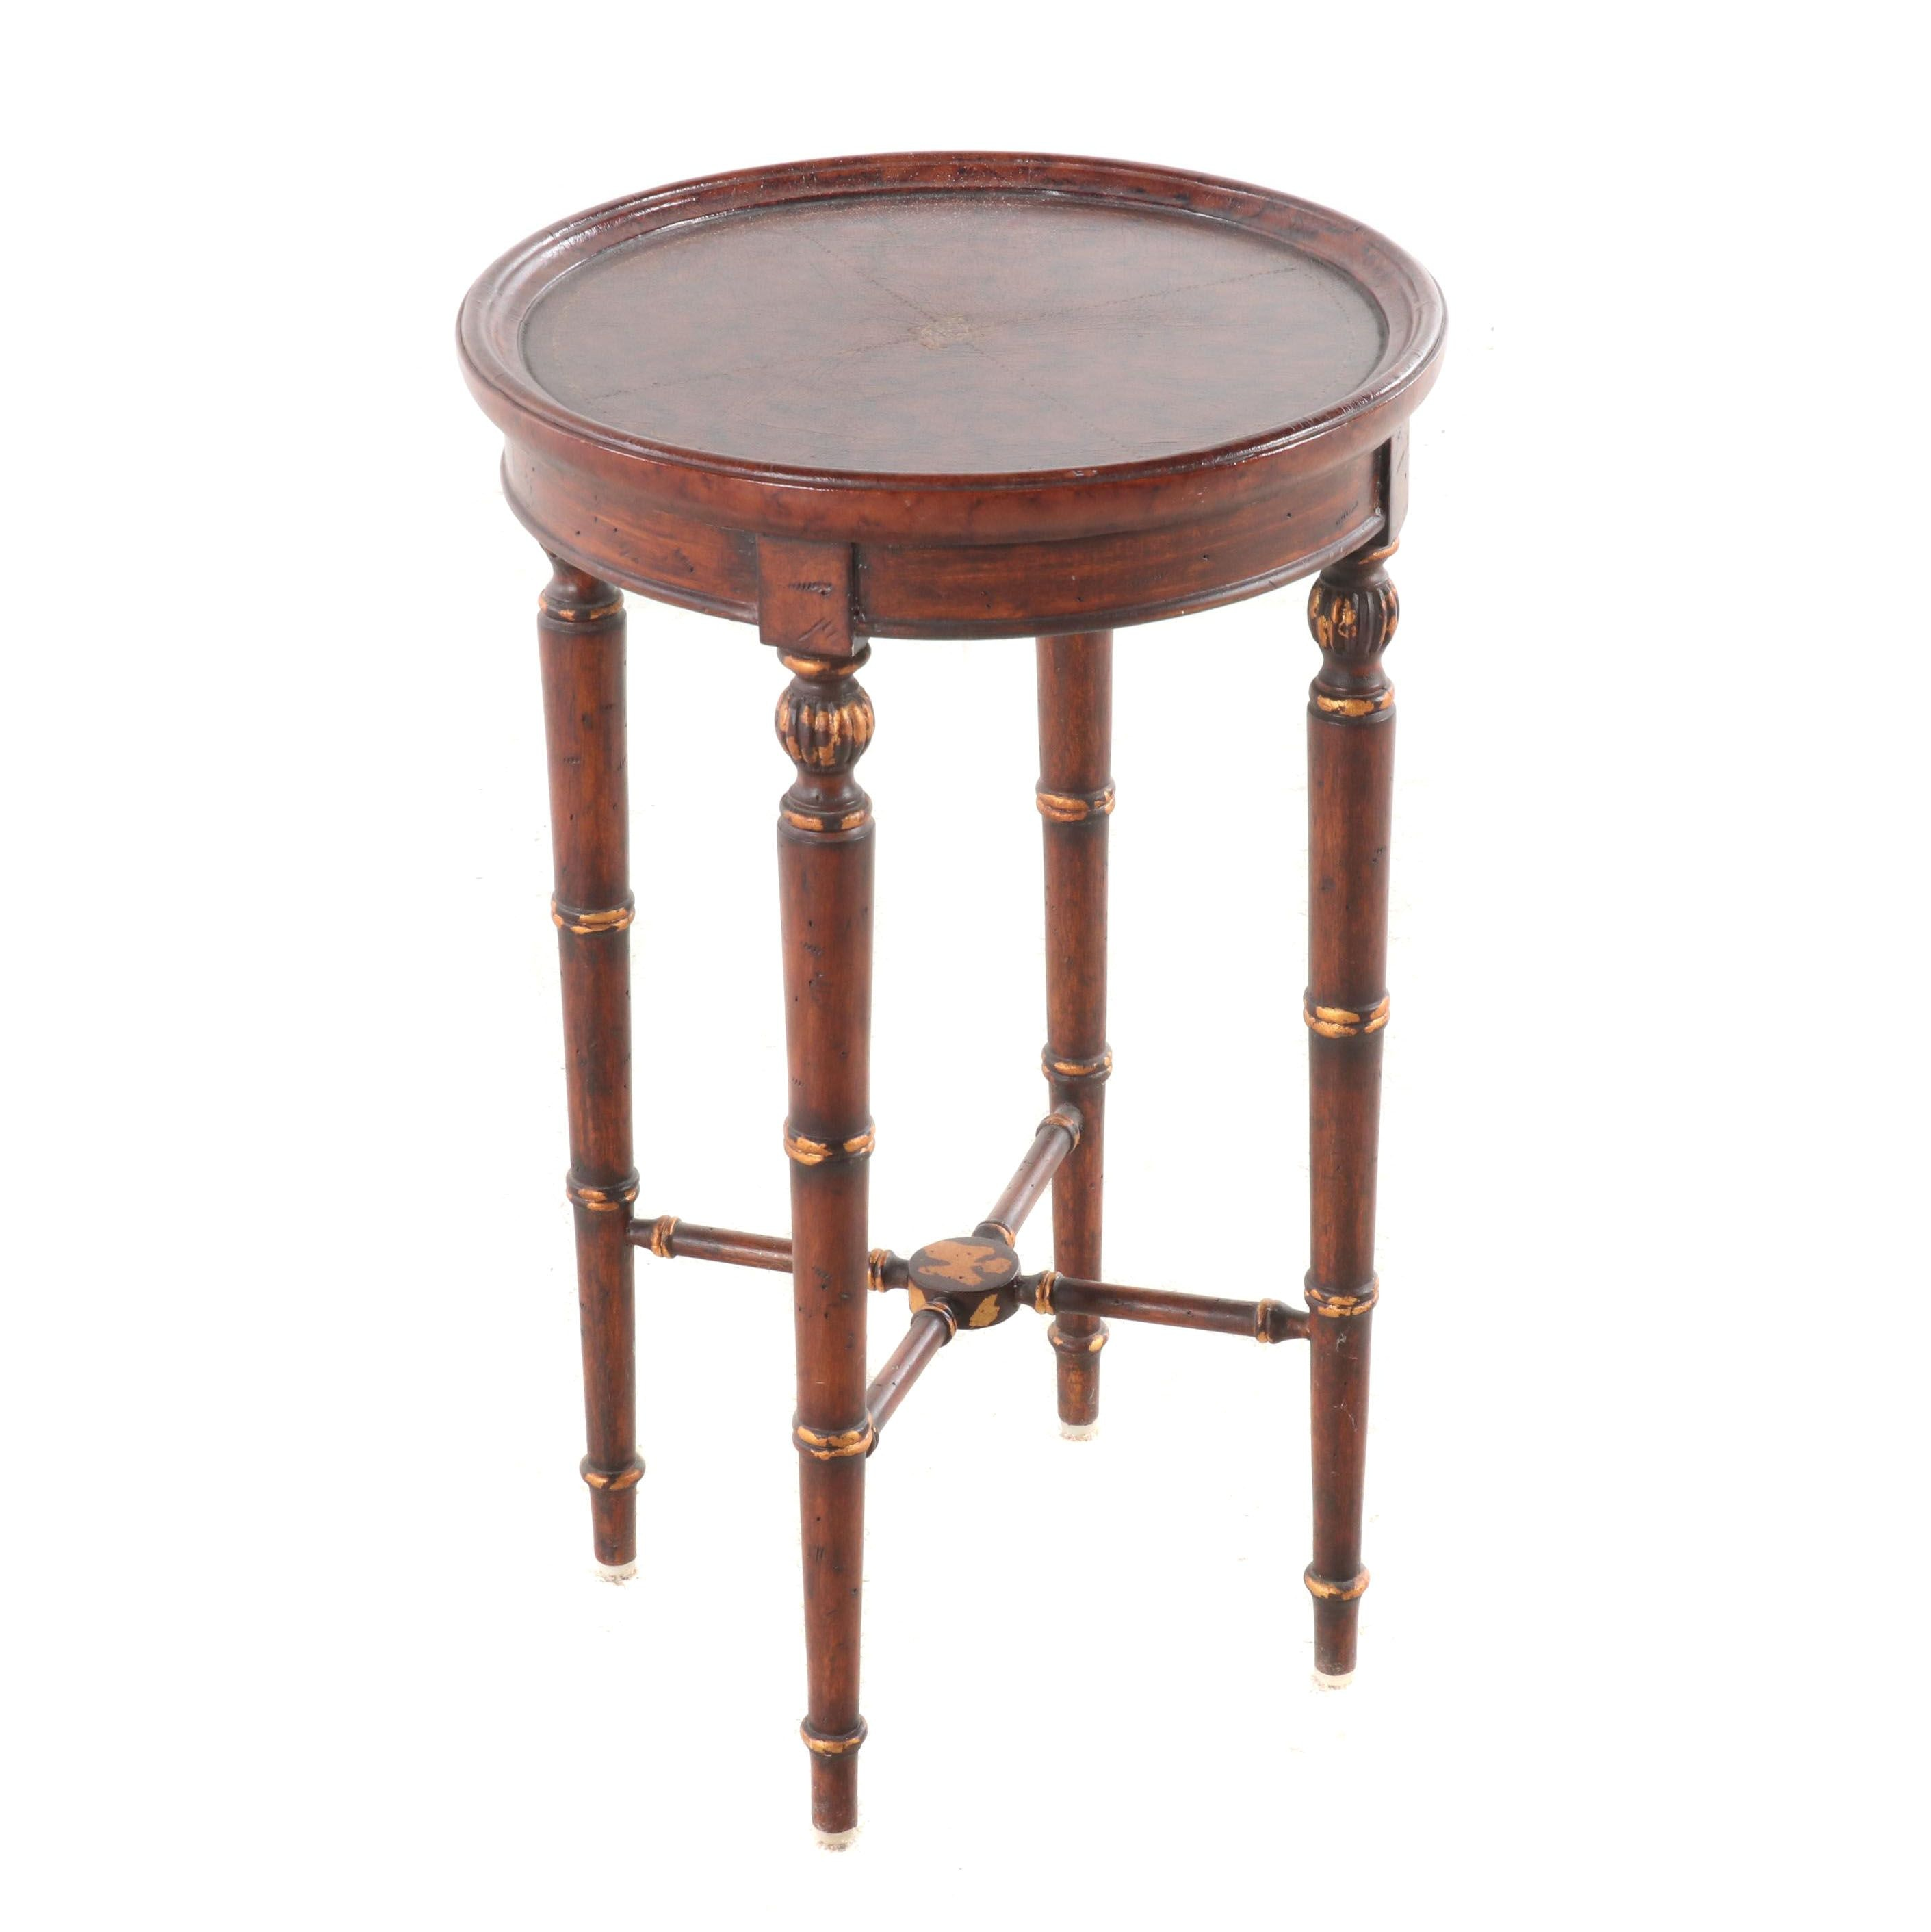 Contemporary Regency Style Painted Leather Top Wooden Side Table